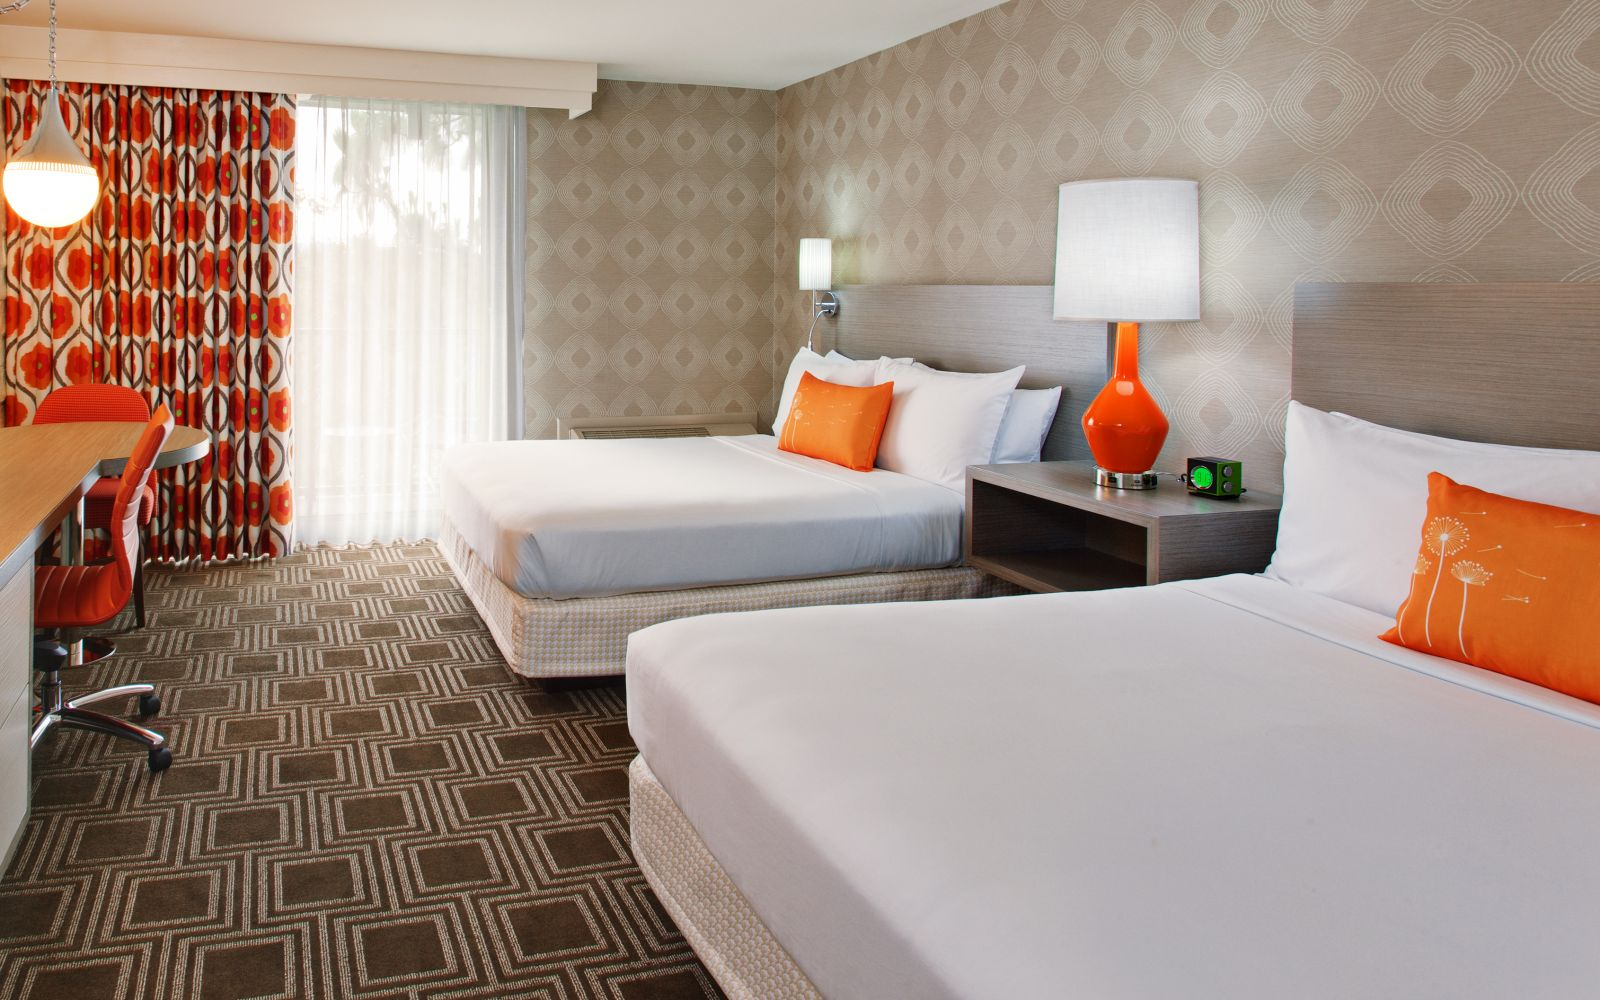 Two queen bed guestrooms at The Garland Hotel in CA